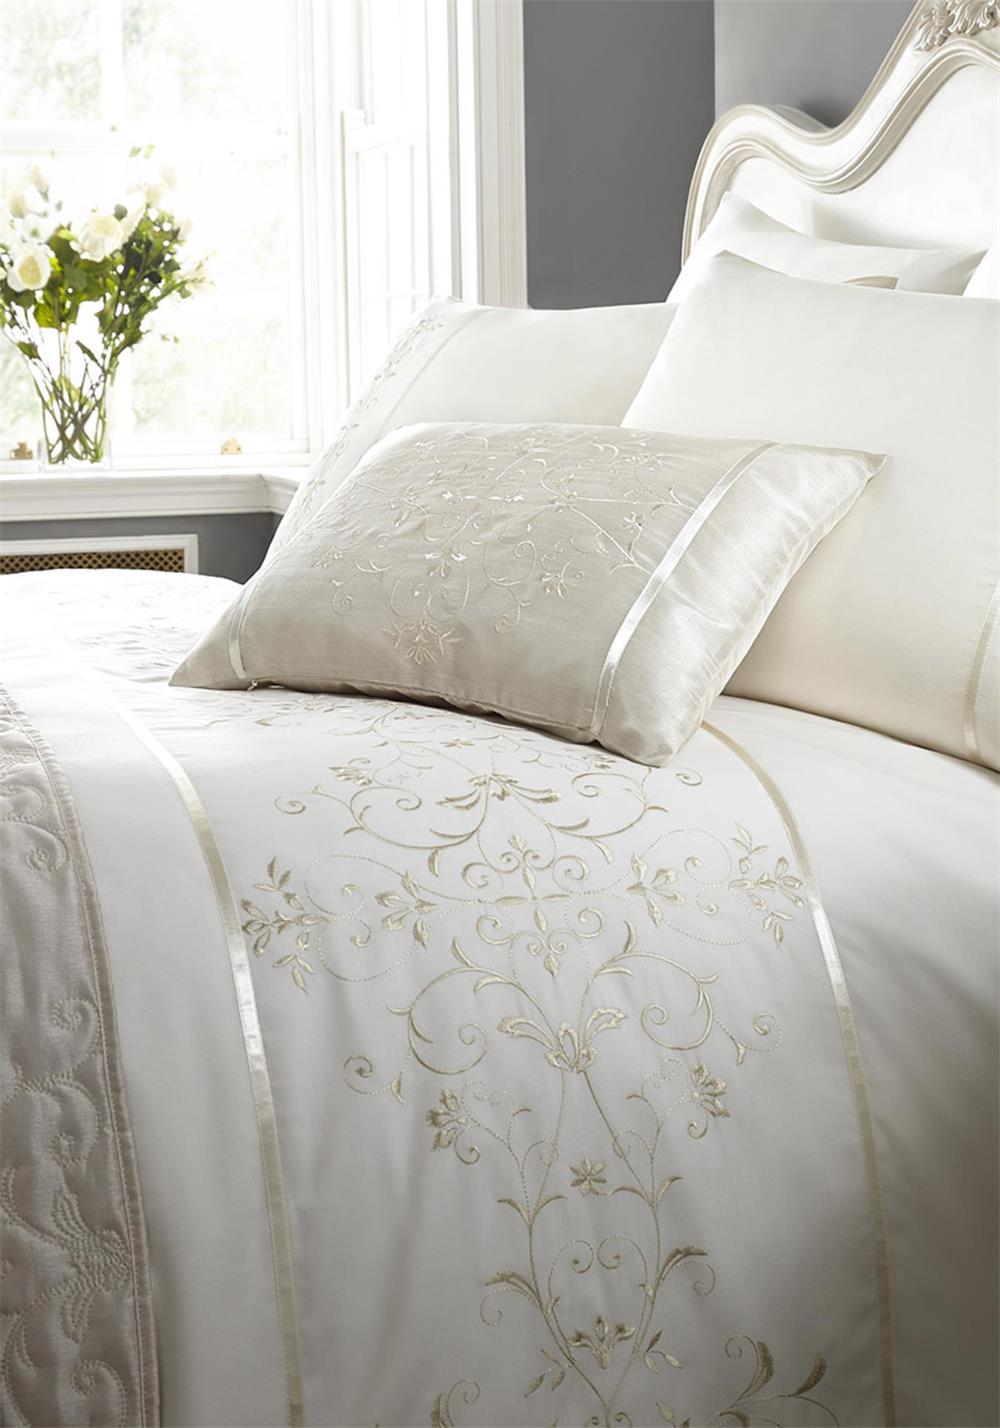 Eleanor James Sutton Duvet Set, Cream